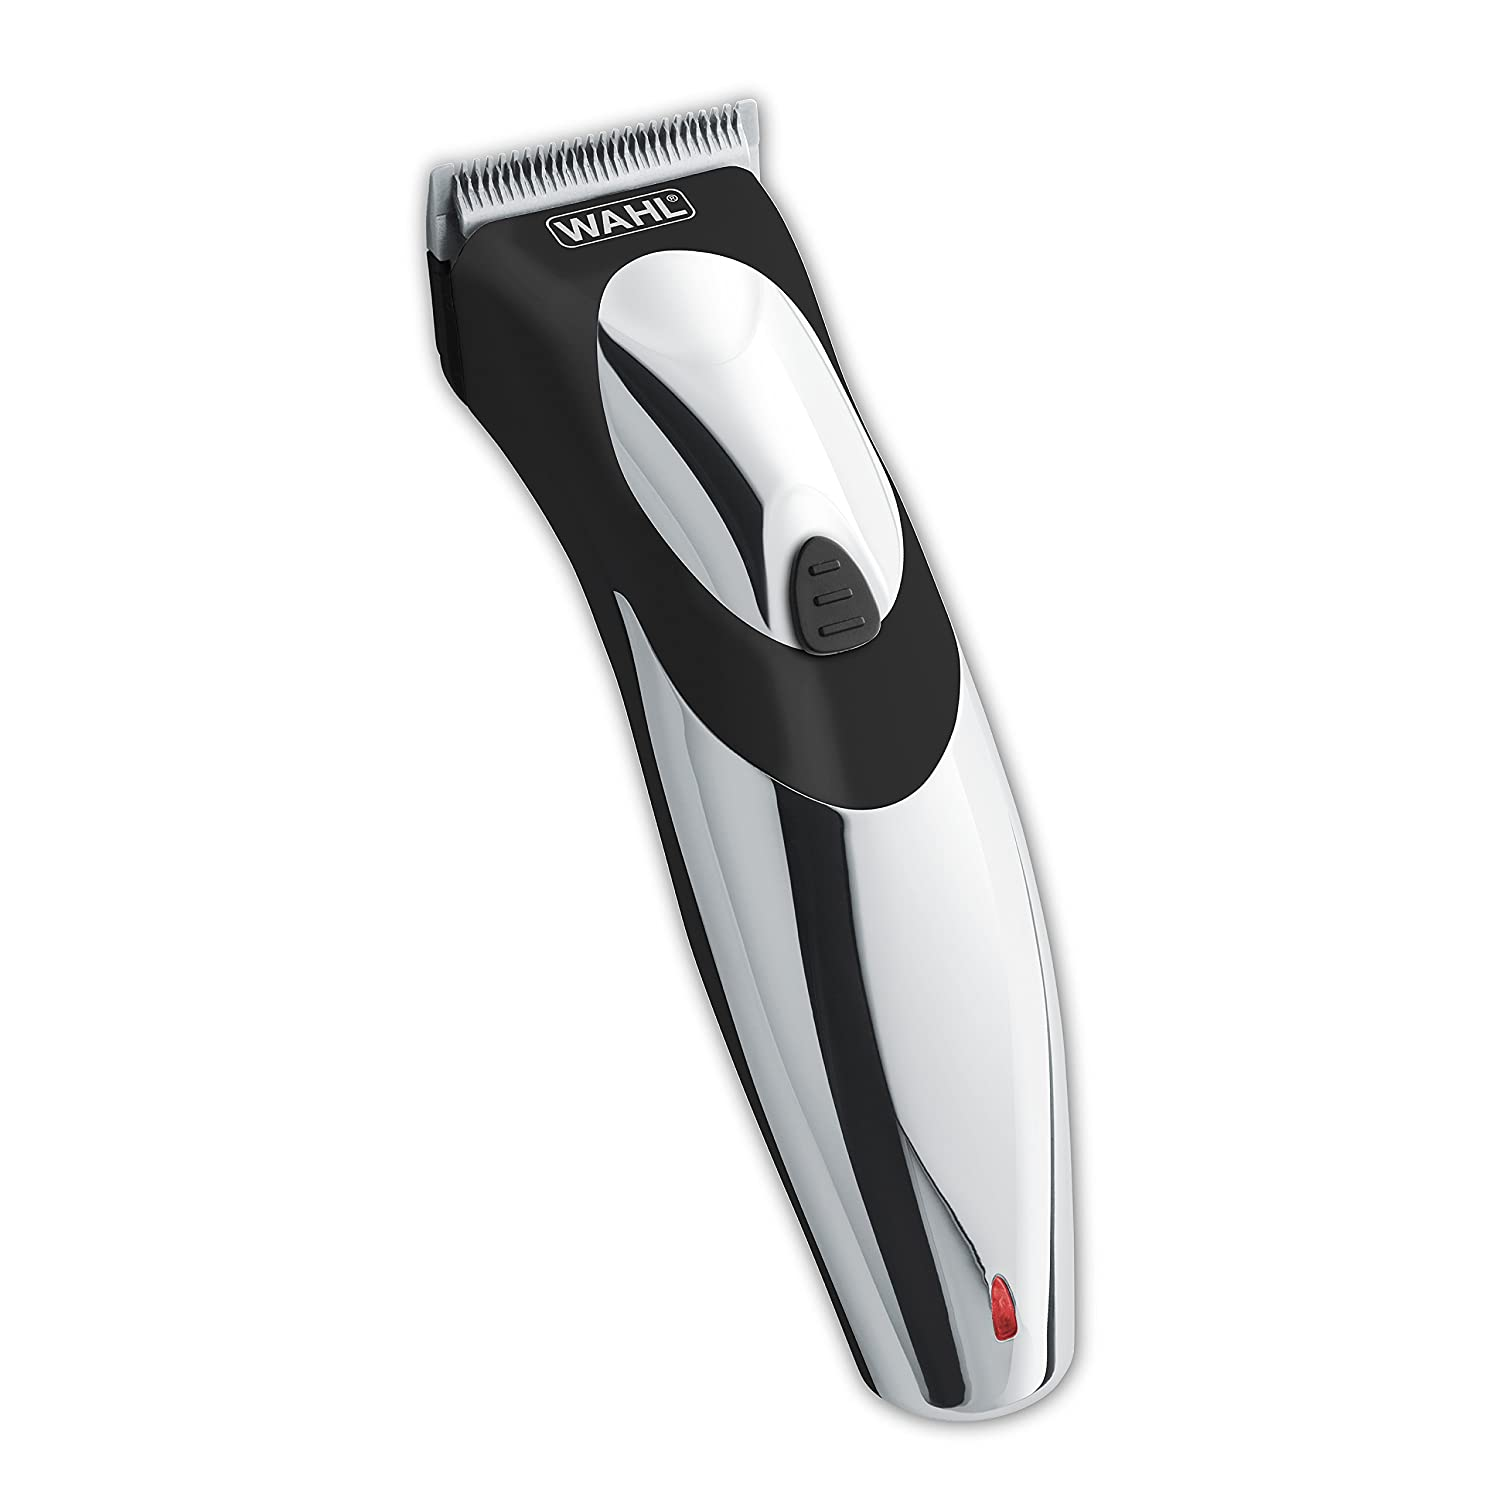 Wahl Haircut and Beard Trimmer Kit, 9639,700